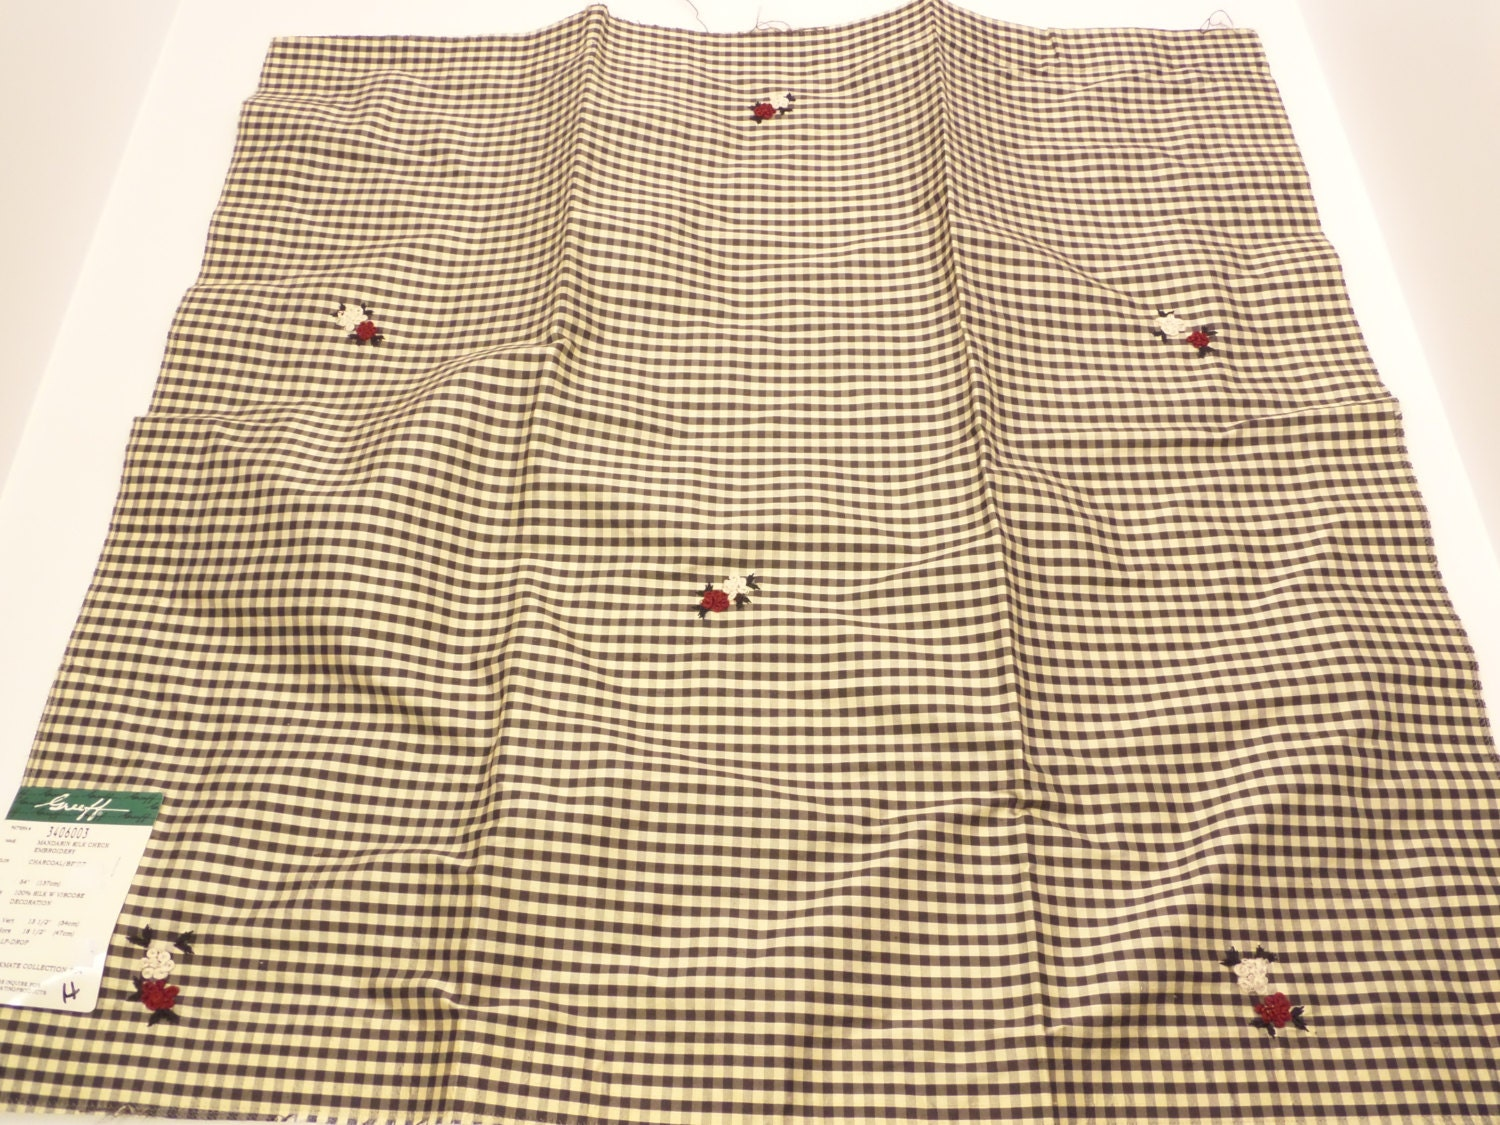 Greeff silk check embroidery fabric sample by